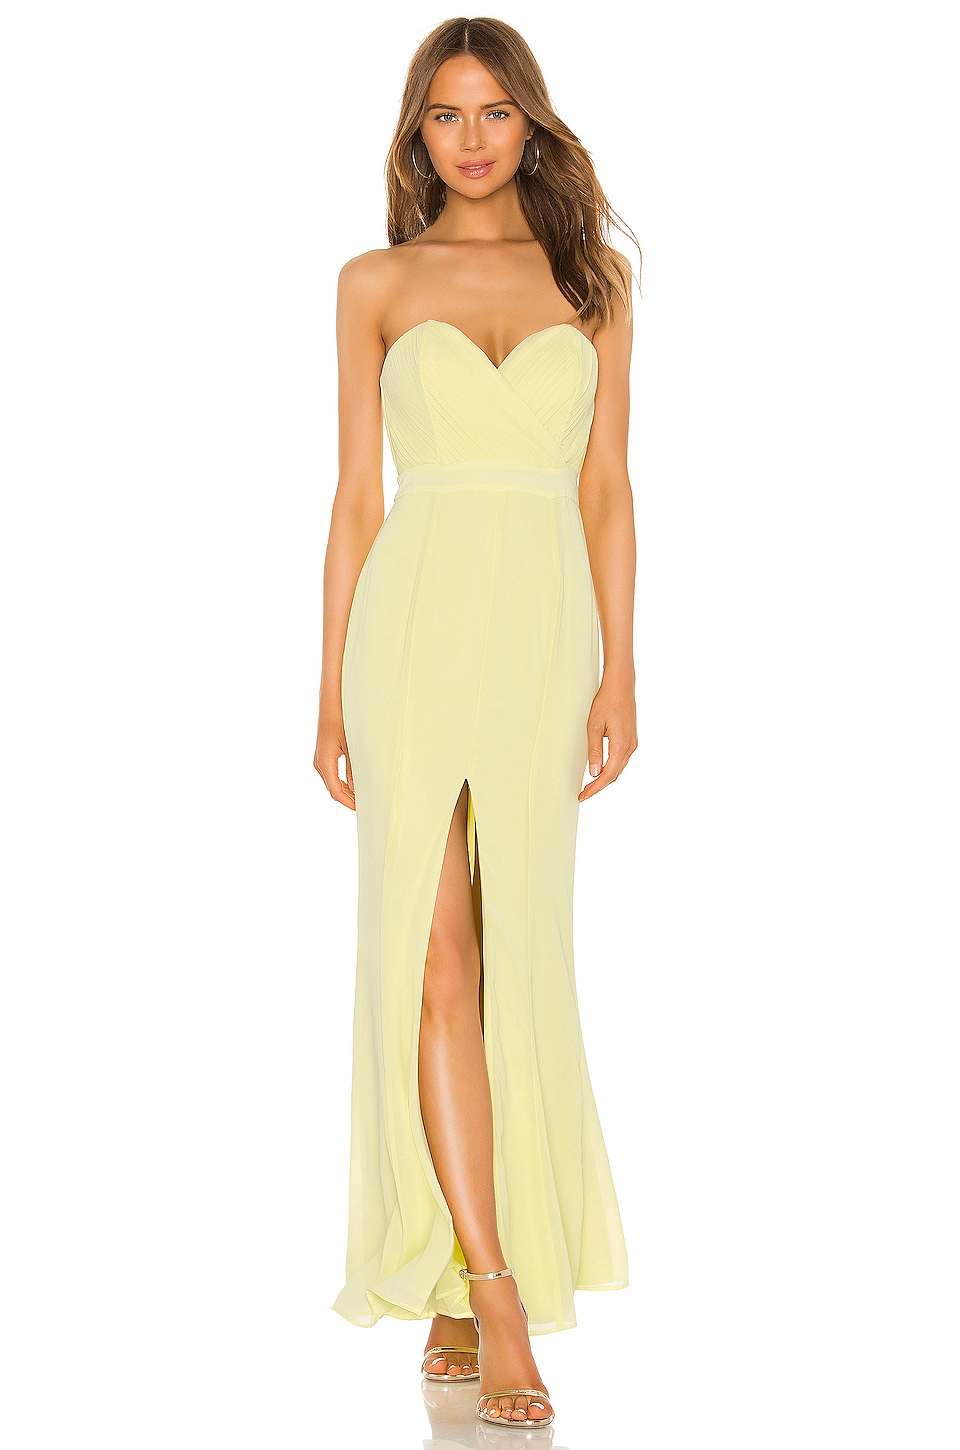 MAJORELLE Damocles Gown in Honey Yellow